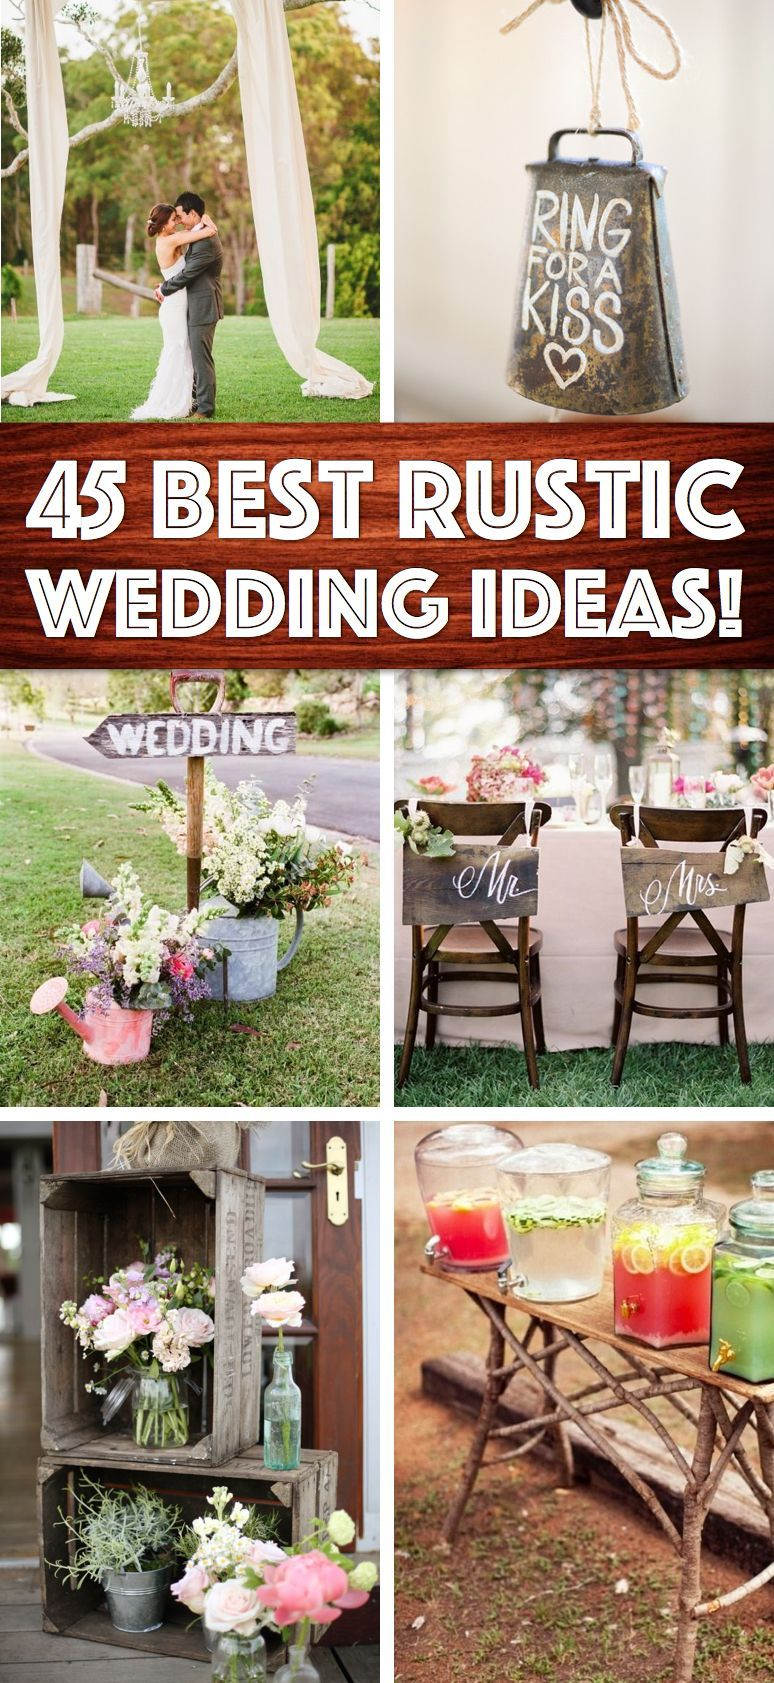 Shine On Your Wedding Day With These Breath Taking Rustic Wedding Ideas Cute Diy Projects Outdoor Wedding Decorations Cheap Wedding Decorations Country Wedding Decorations